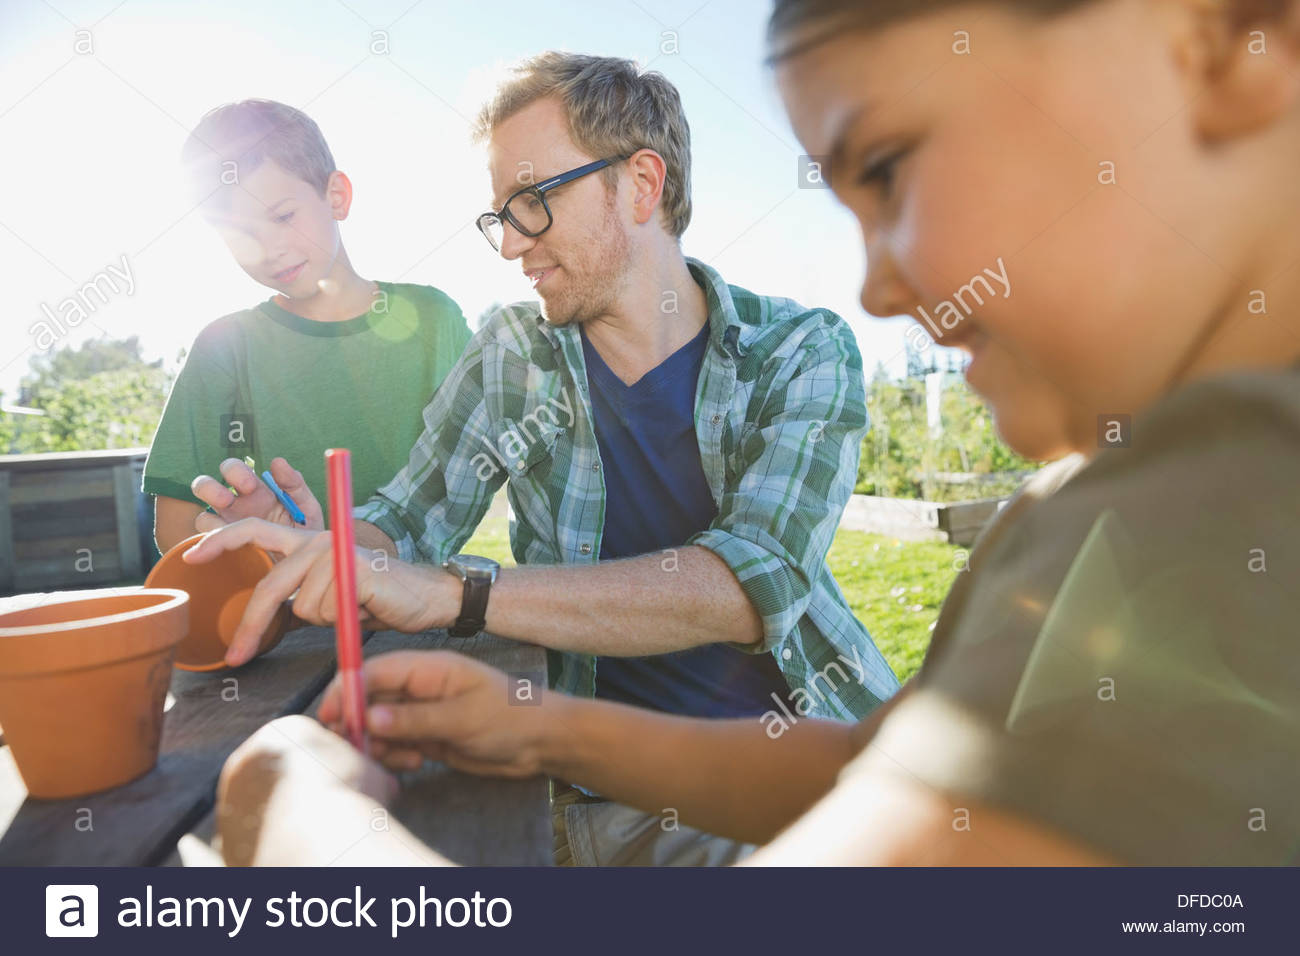 Teacher working with kids to decorate terracotta pots - Stock Image